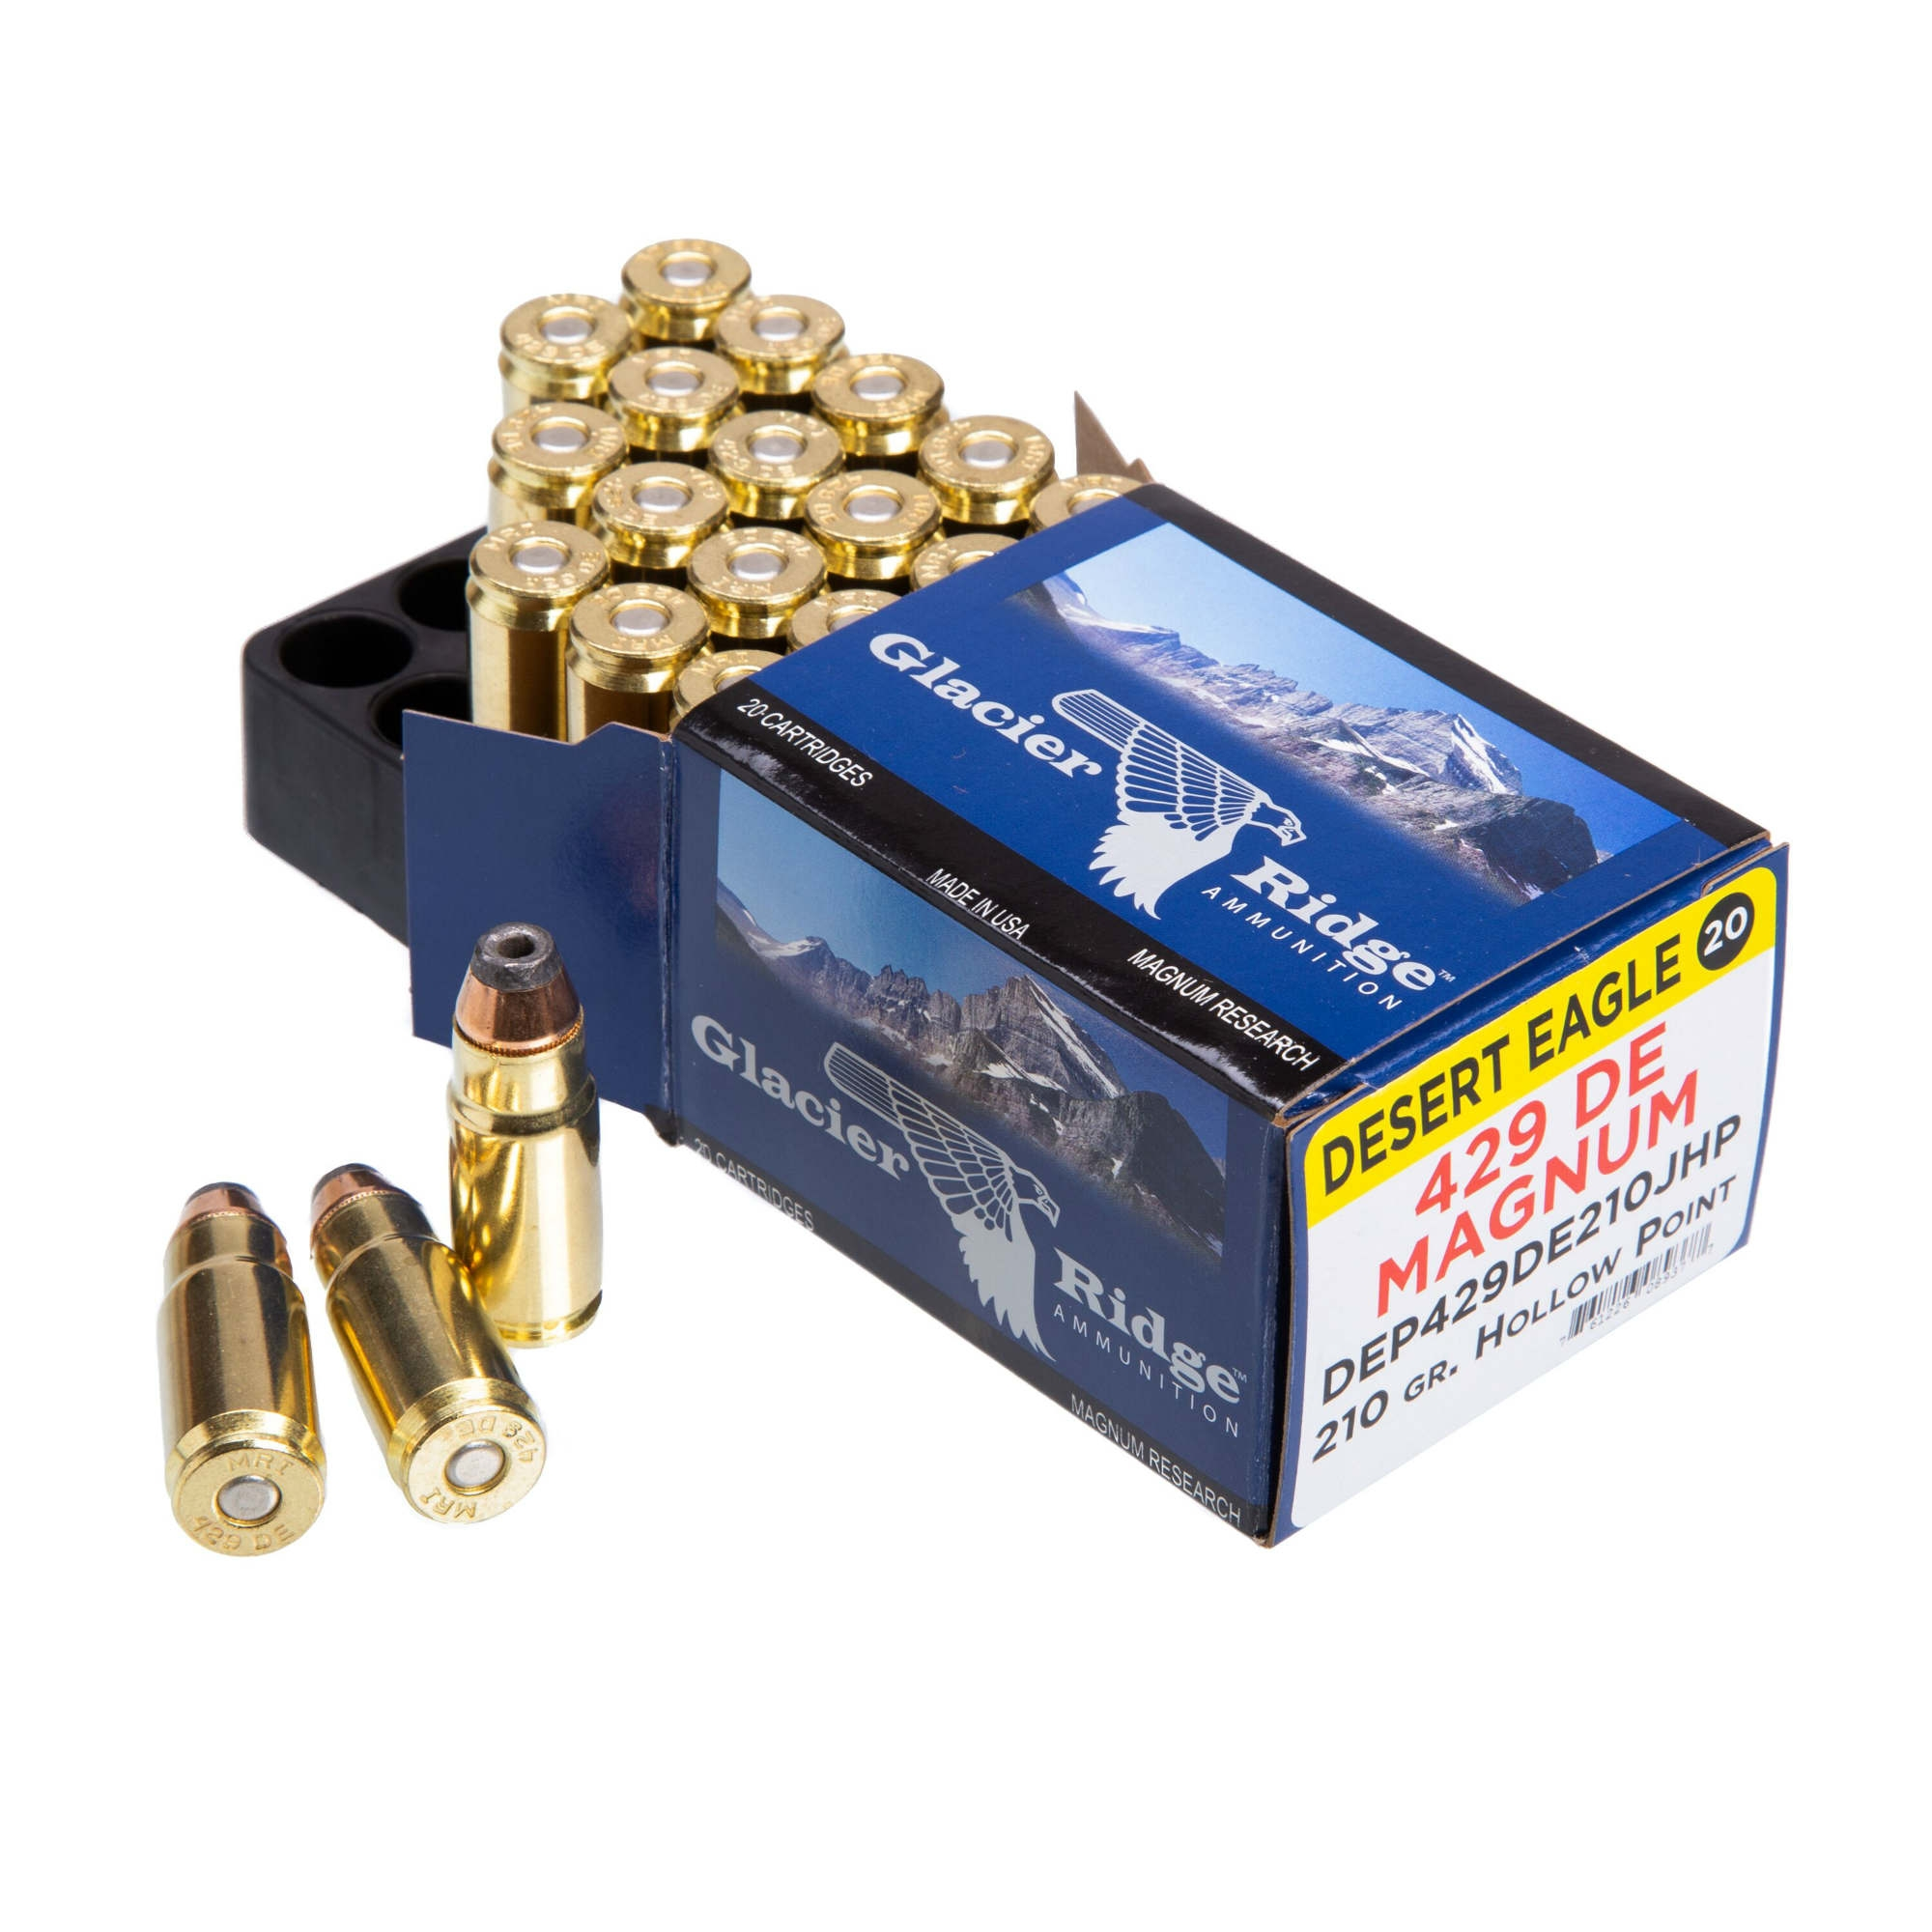 desert-eagle-429-de-cartridges-package.jpg